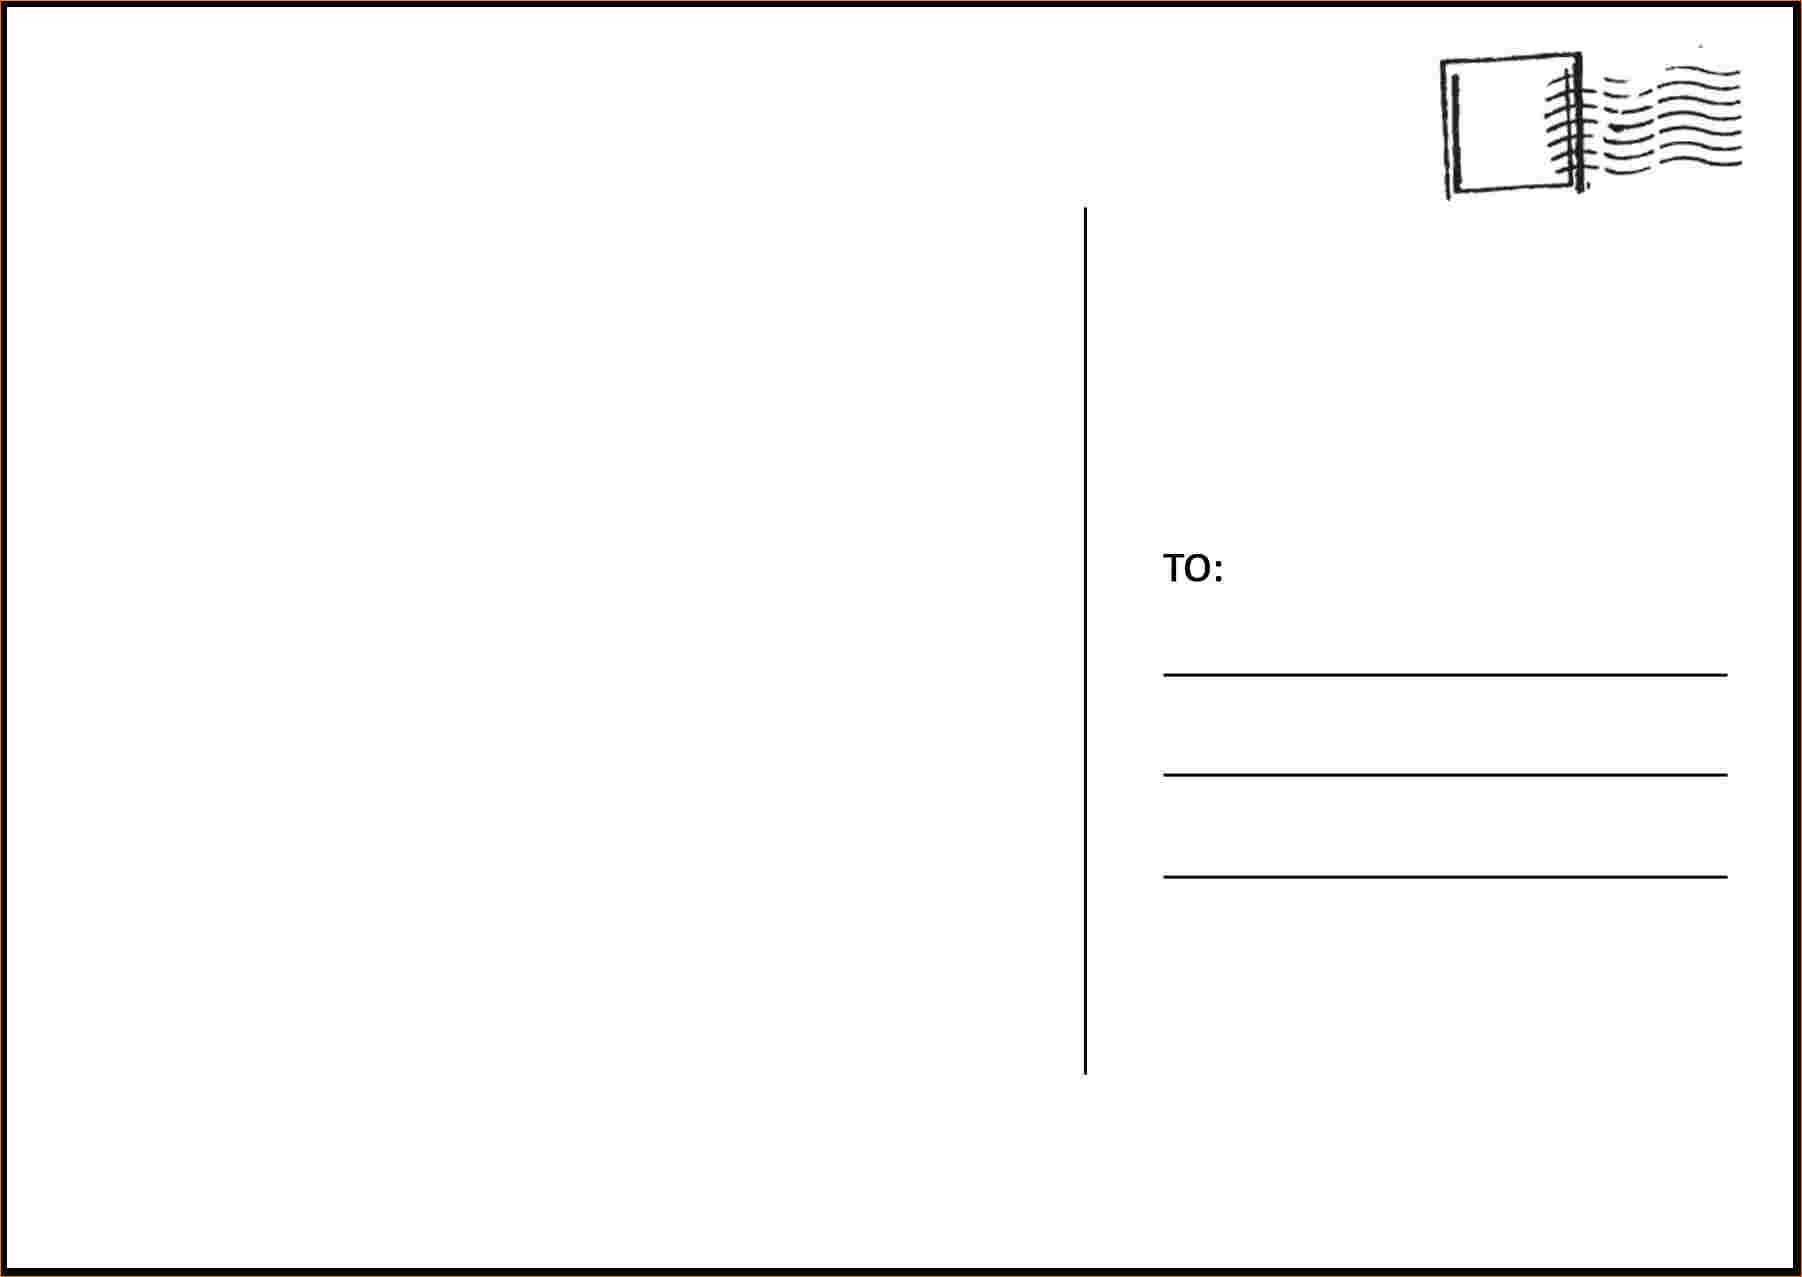 Postcard Template For Word Free Templates Excellent Ideas Blank Pertaining To Free Blank Postcard Template For Word